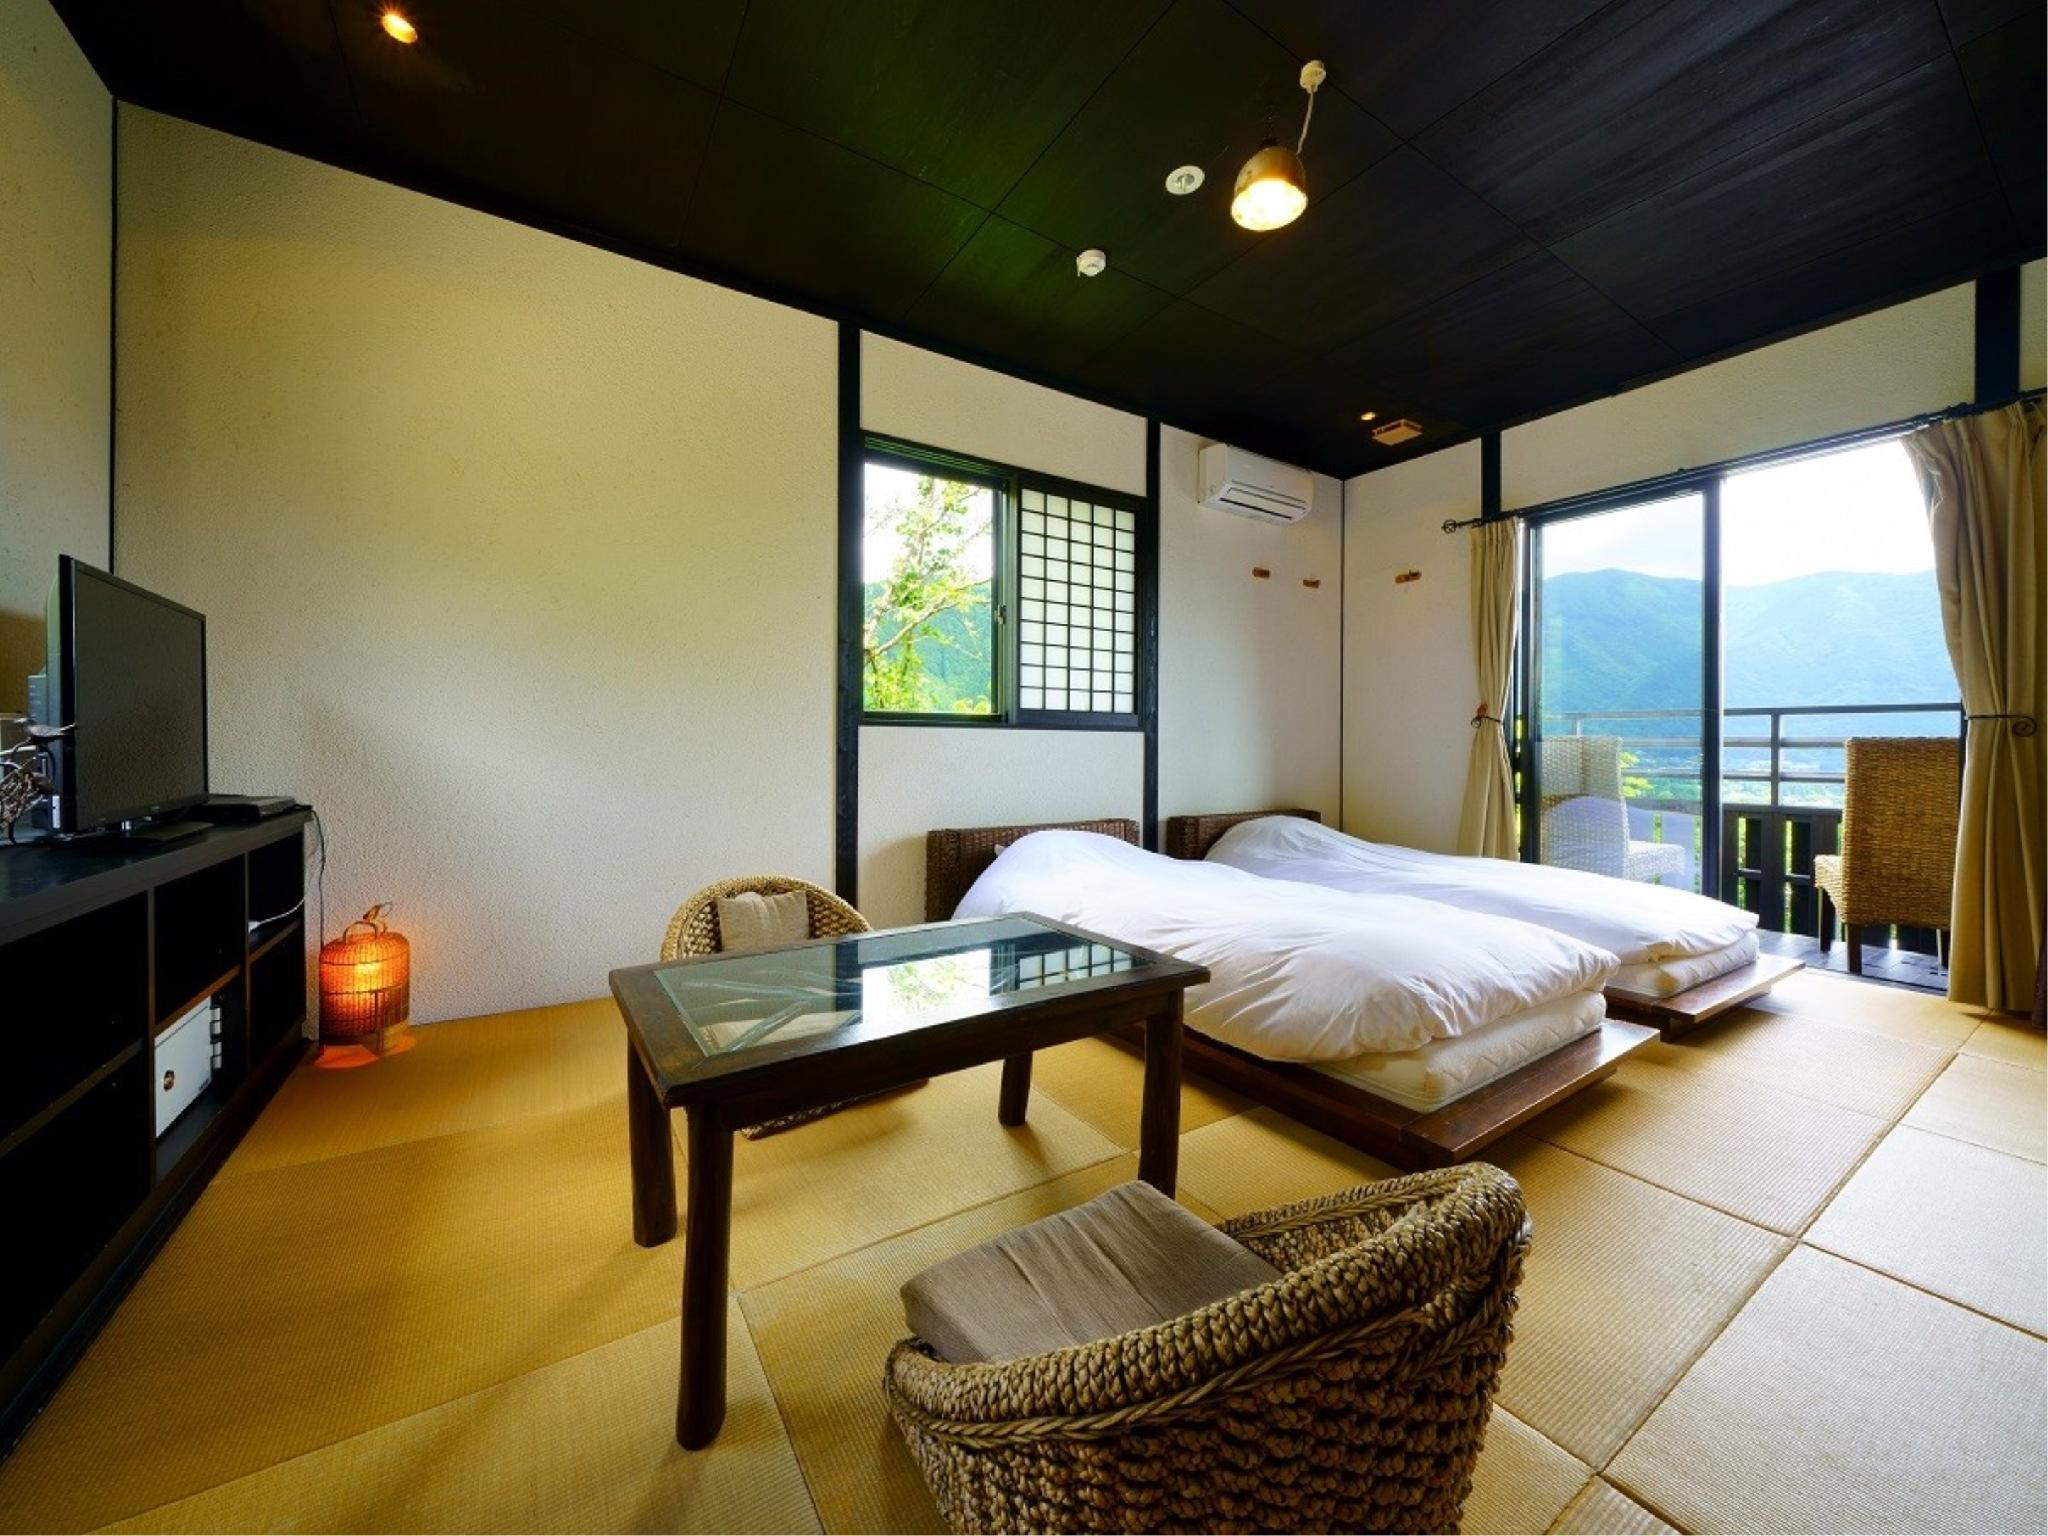 獨立房(和洋式房+2張床+室內風呂) (Detached Japanese/Western-style Room with Indoor Bath (Twin Beds))